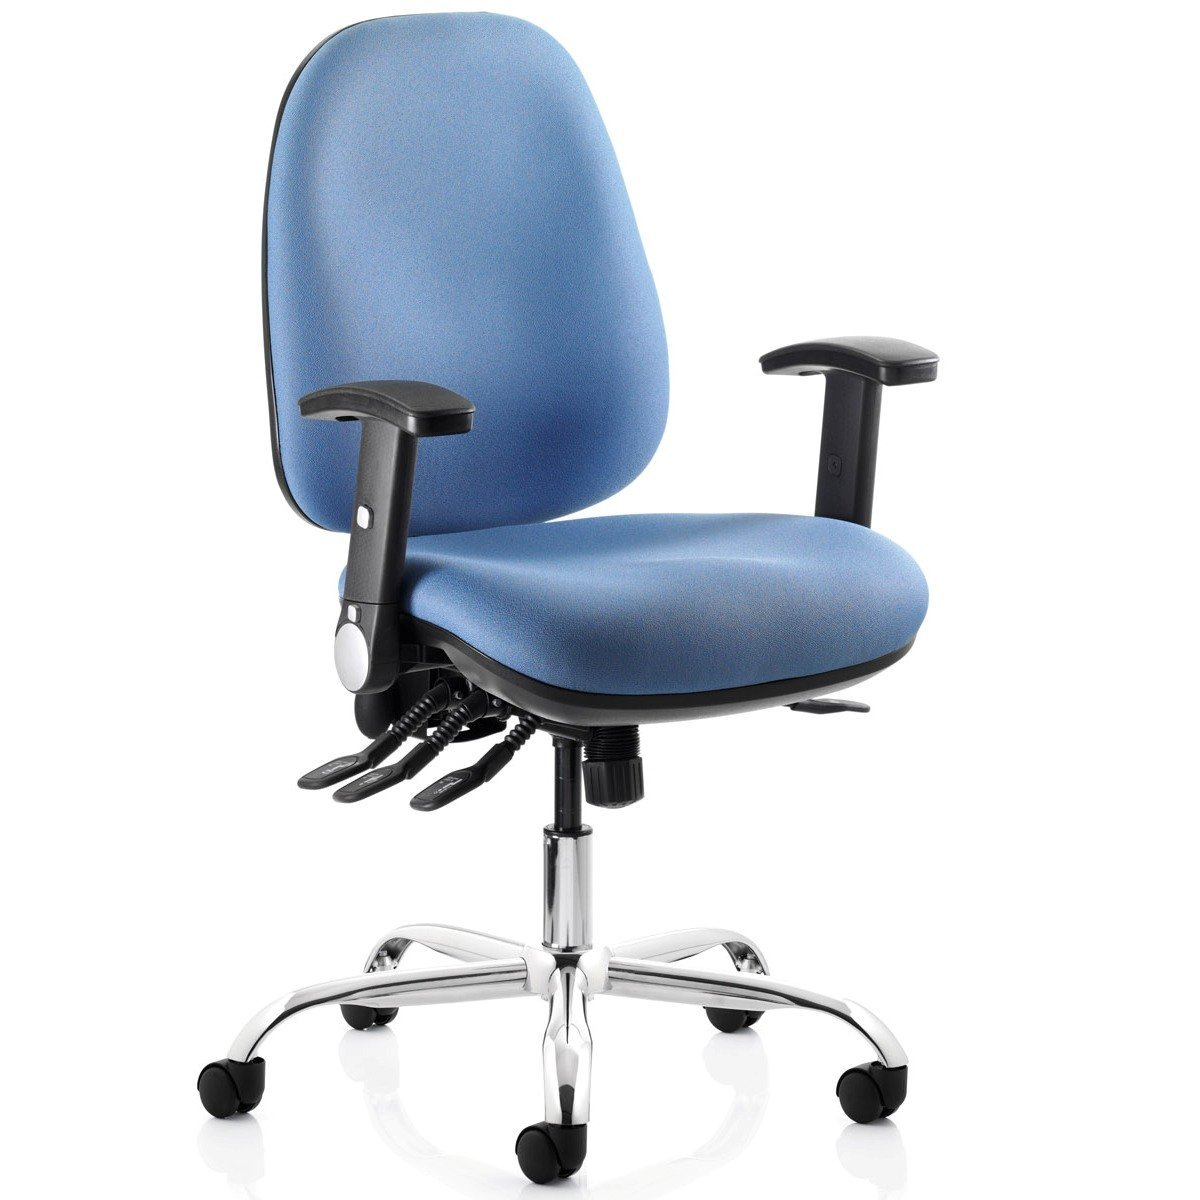 YOUR CHAIR+POSTURE-Select a chair with back support that allows you to sit up straight comfortably.Your feet should rest flat on thr floor. Chair arms should support your arms while you are typing. Never rest your wrists on the key board.